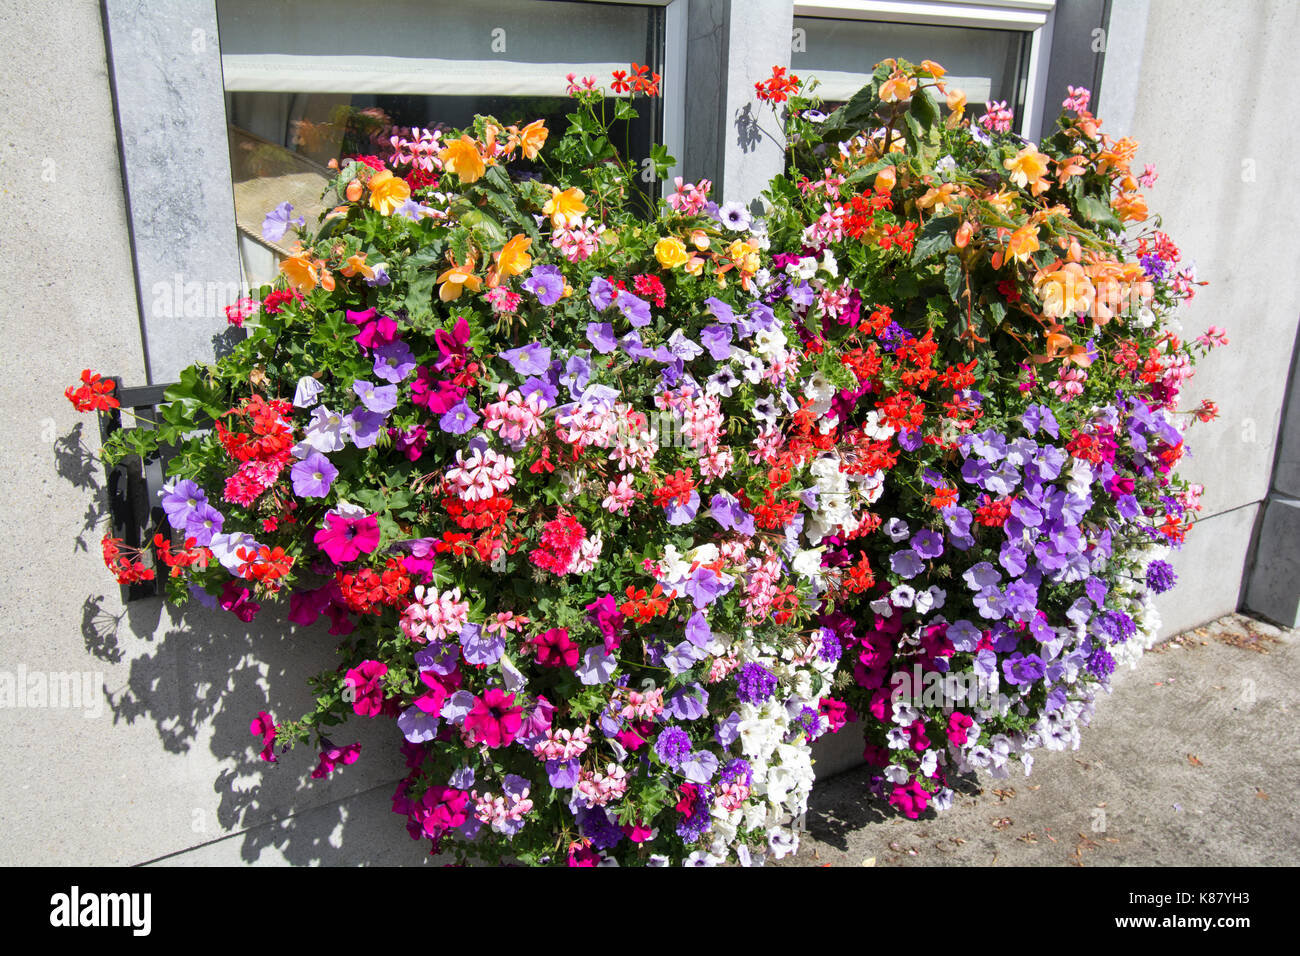 A very good display of flowers in a window box - Stock Image